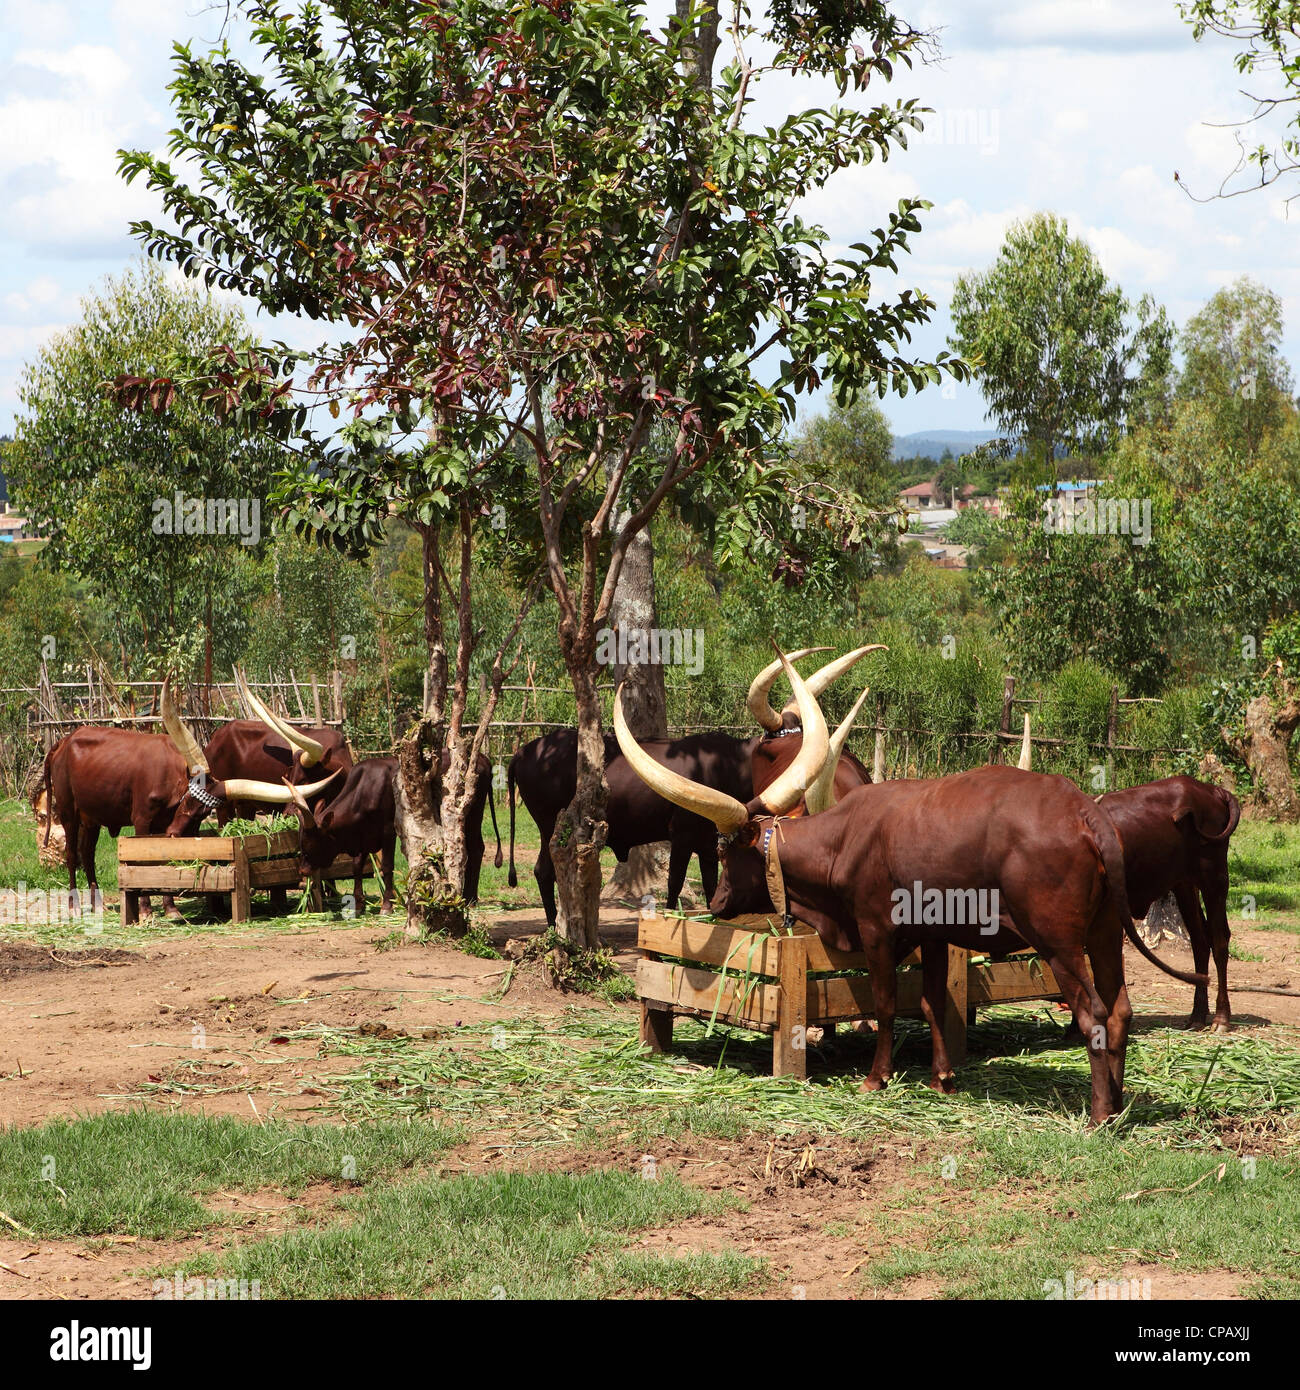 African Long-Horned Cows in a stockade at the King's Palace, Nyanza, Rwanda. - Stock Image